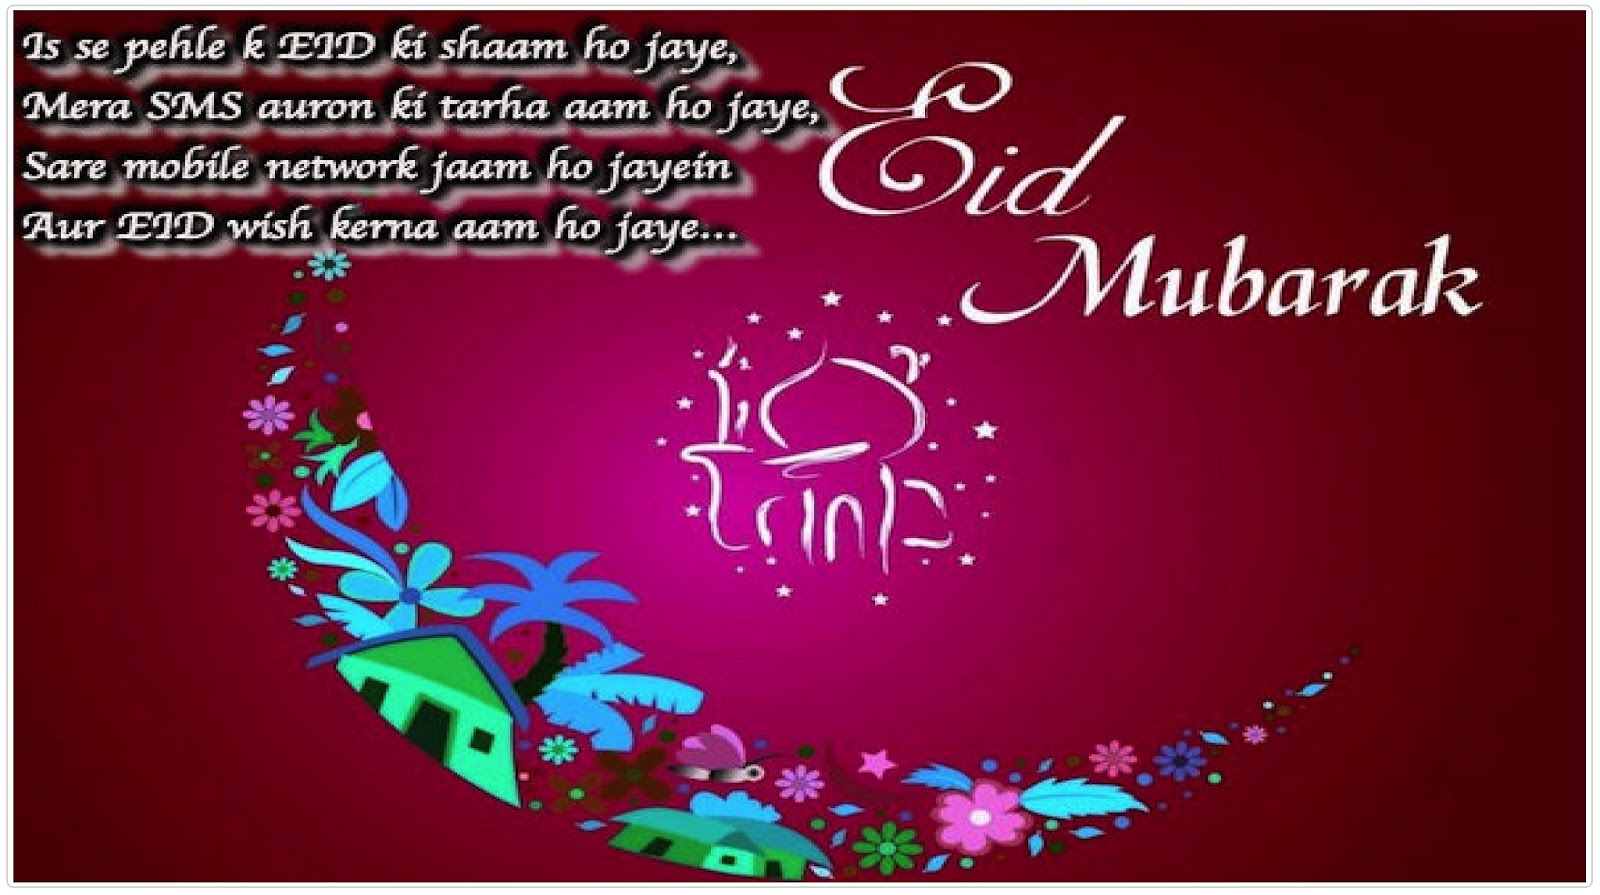 Eid mubarak wishes2018 quotes messages sms greetings status 2018 eid mubarak greetings quotes m4hsunfo Image collections